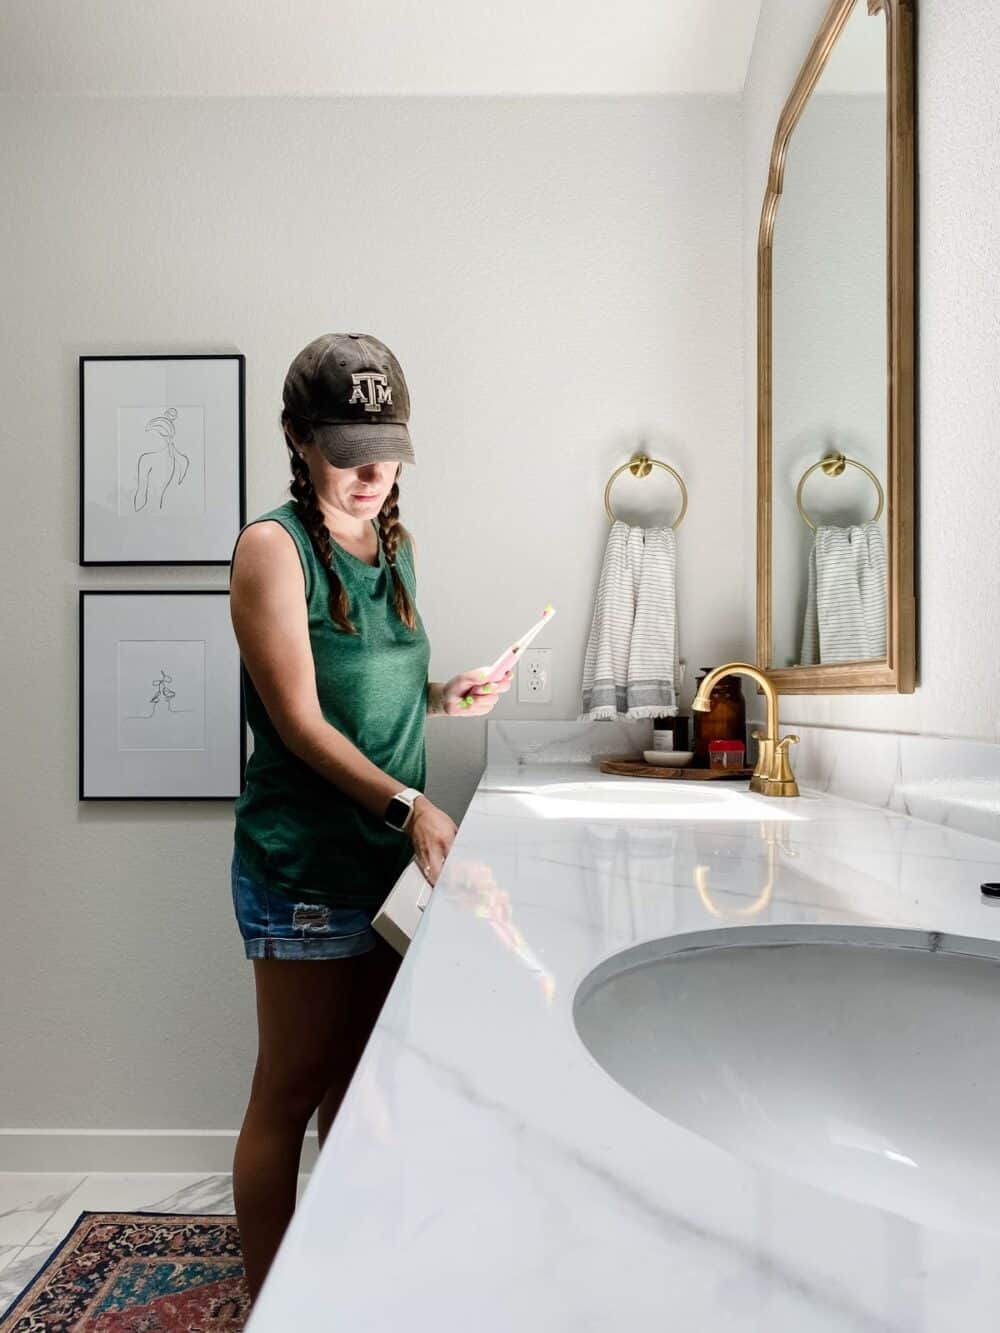 Woman getting a toothbrush from a tilt-down drawer in vanity